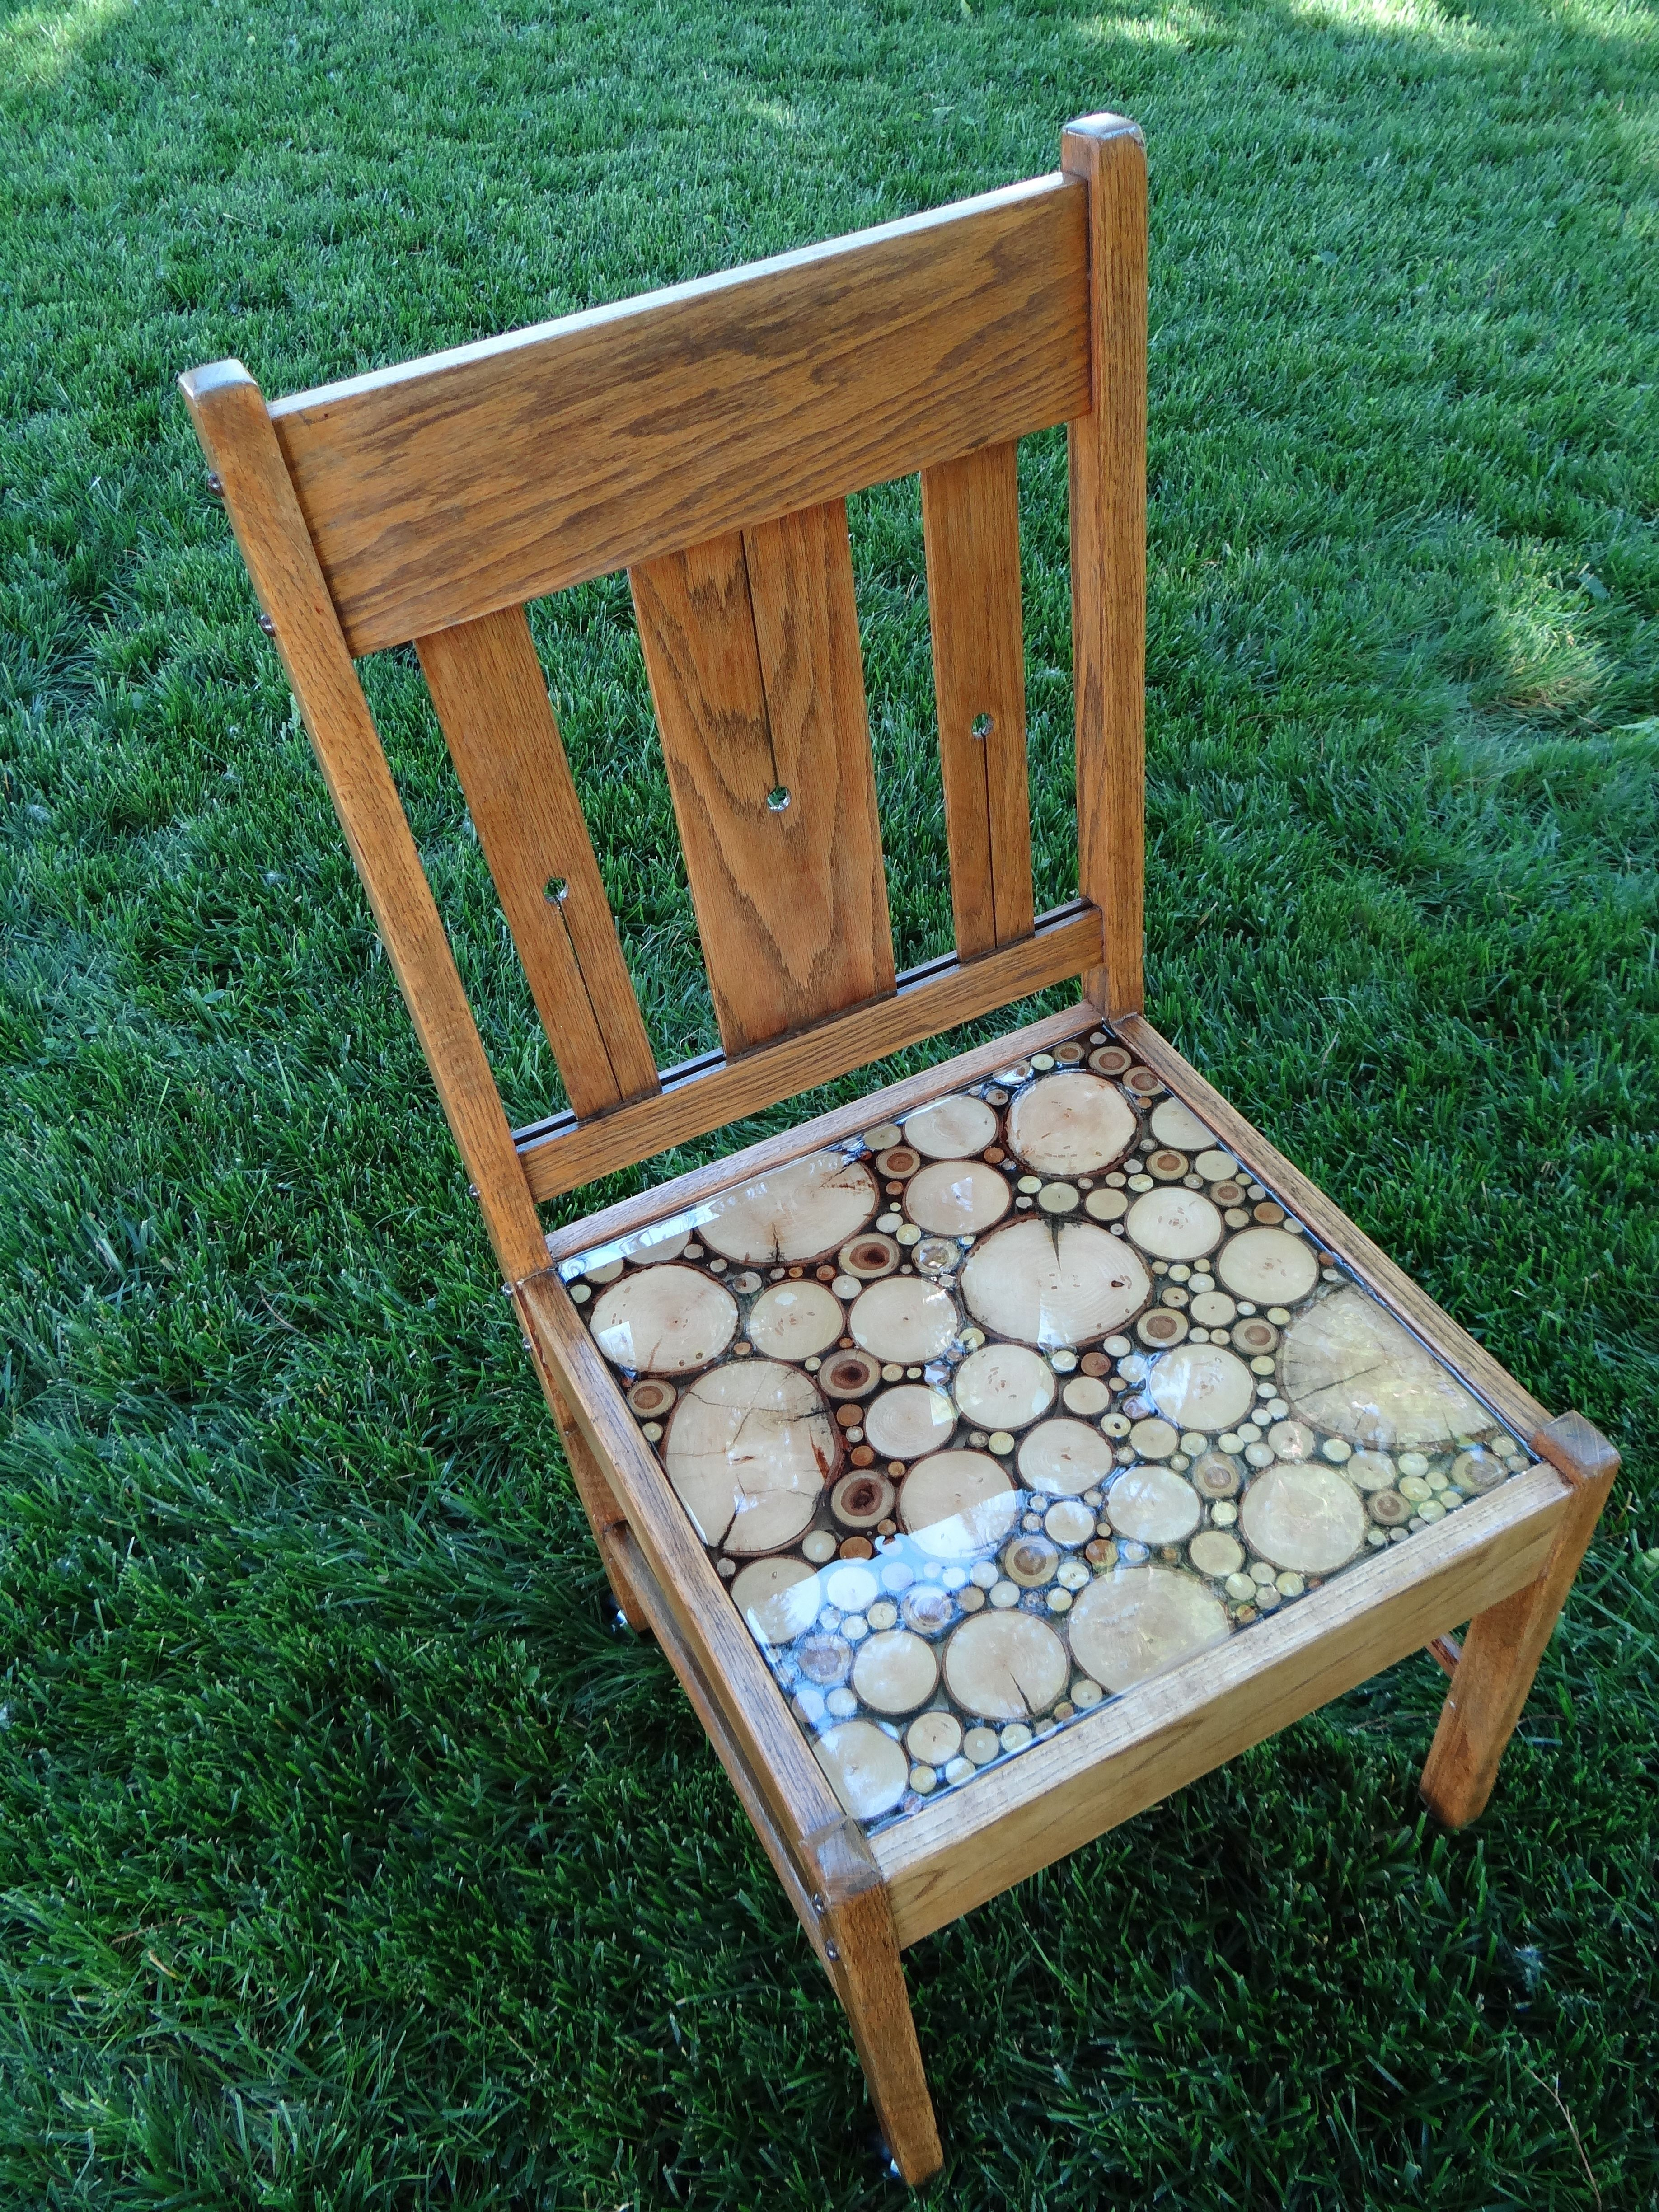 """""""Riding the Pines"""" An old chair that was missing it's seat was filled with 1/4"""" slices of wood and filled with resin.  4 wheels were added to raise it to the appropriate seating height"""